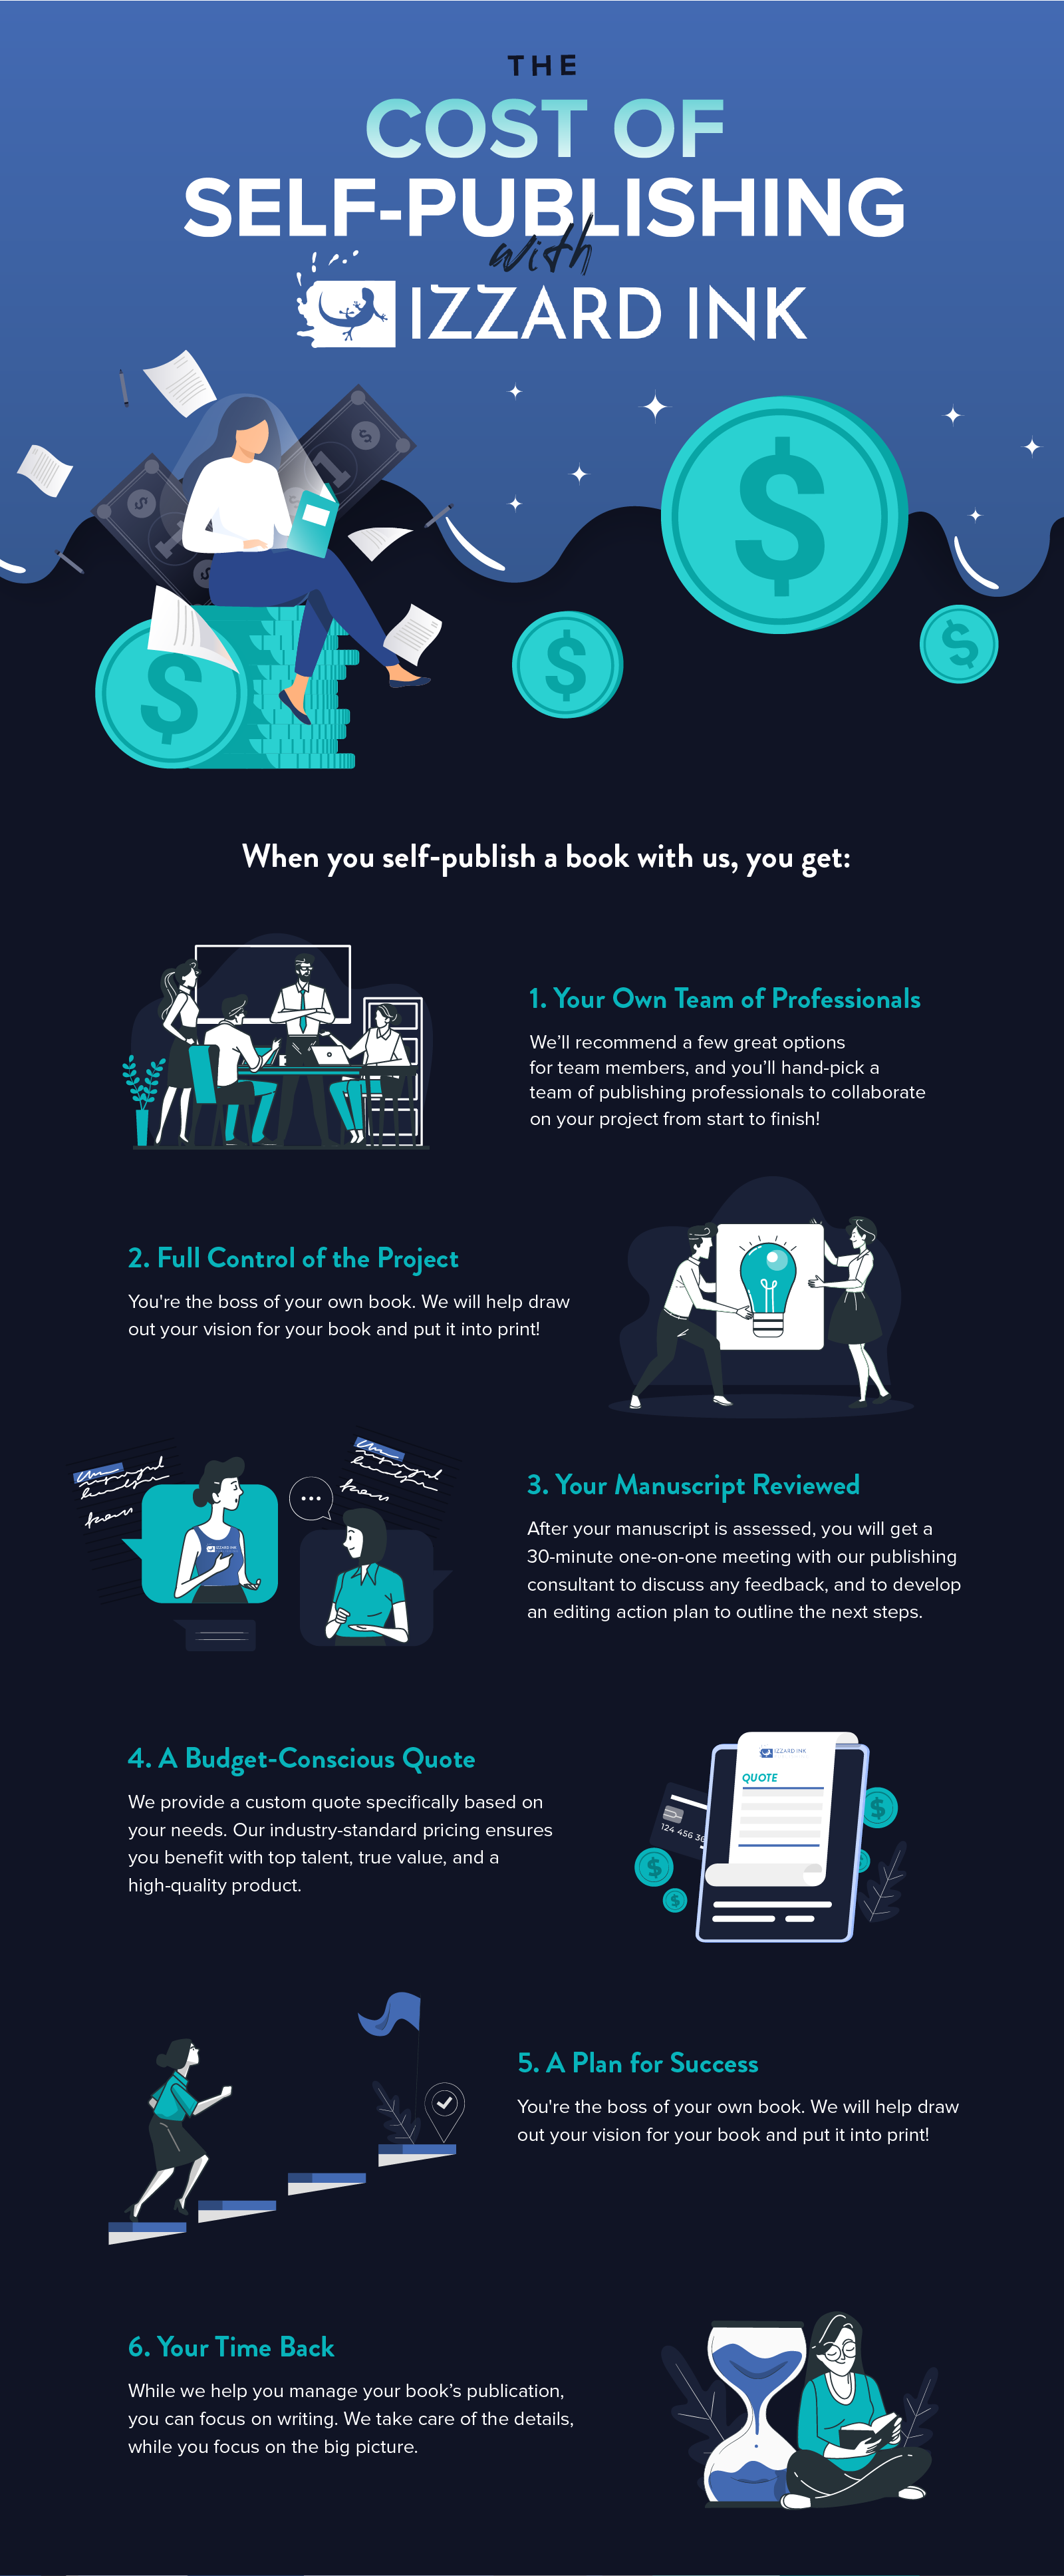 The Cost of Self Publishing with Izzard Ink Infographic